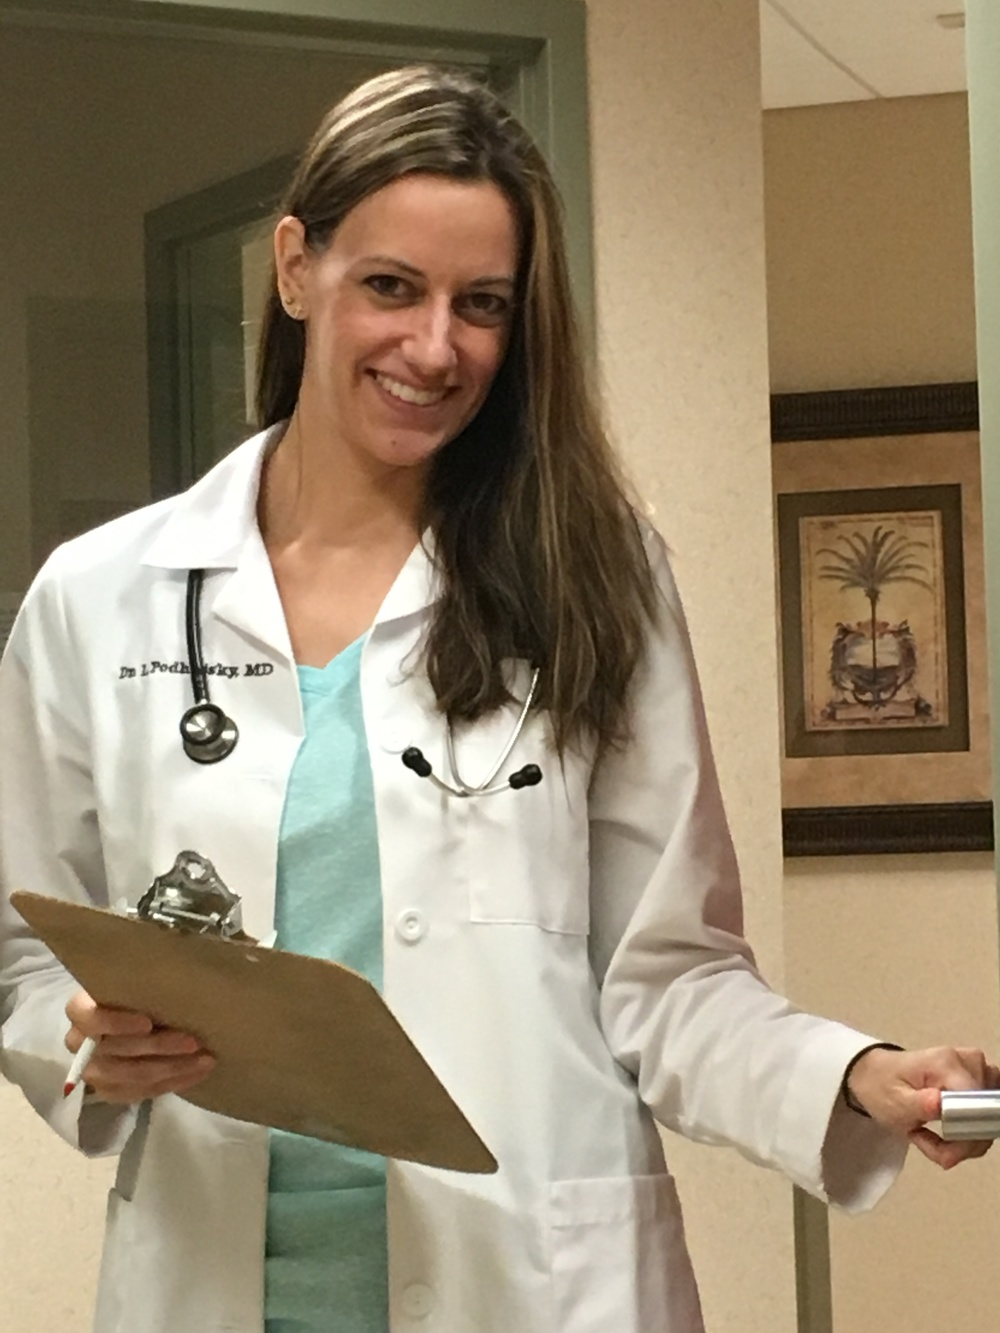 Lindsay Podhajsky, MD // Family Practice // University of Kansas